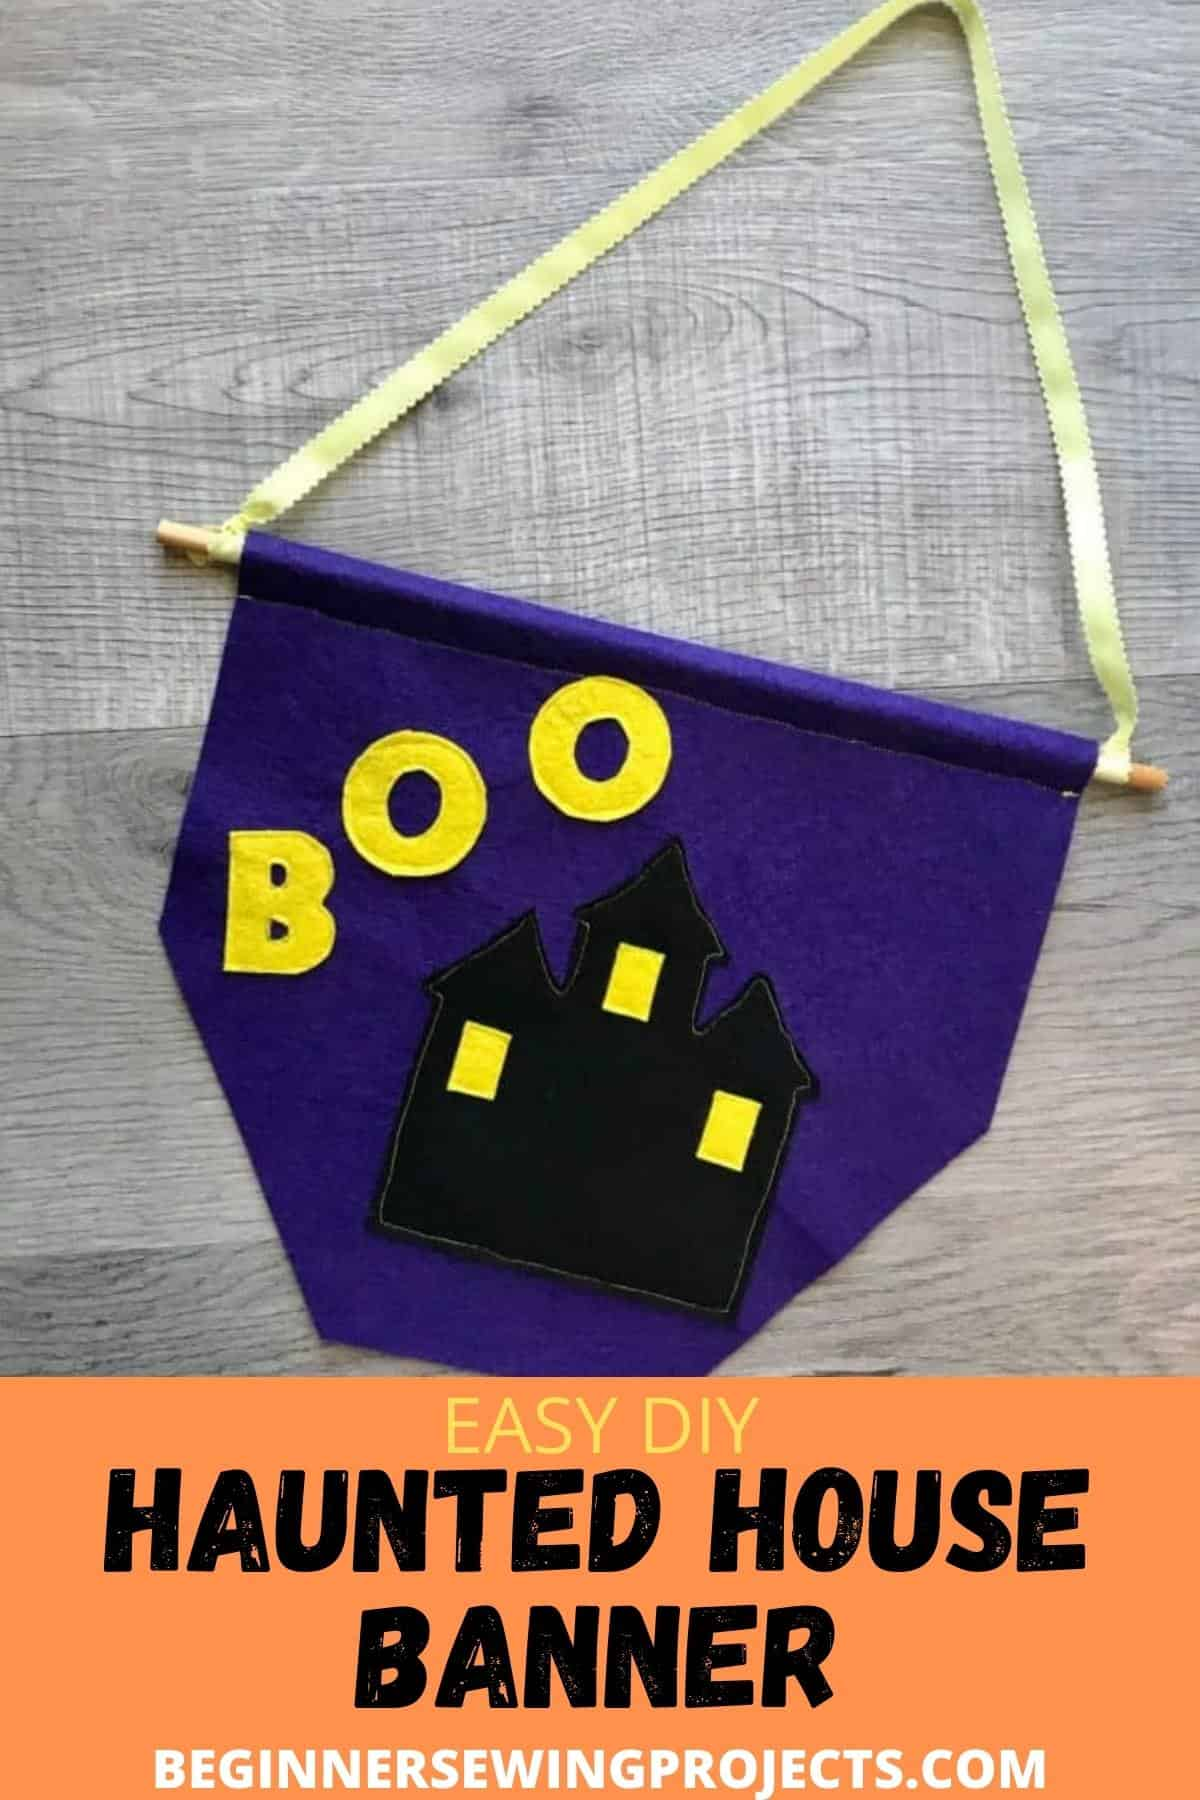 Easy DIY Haunted House Banner